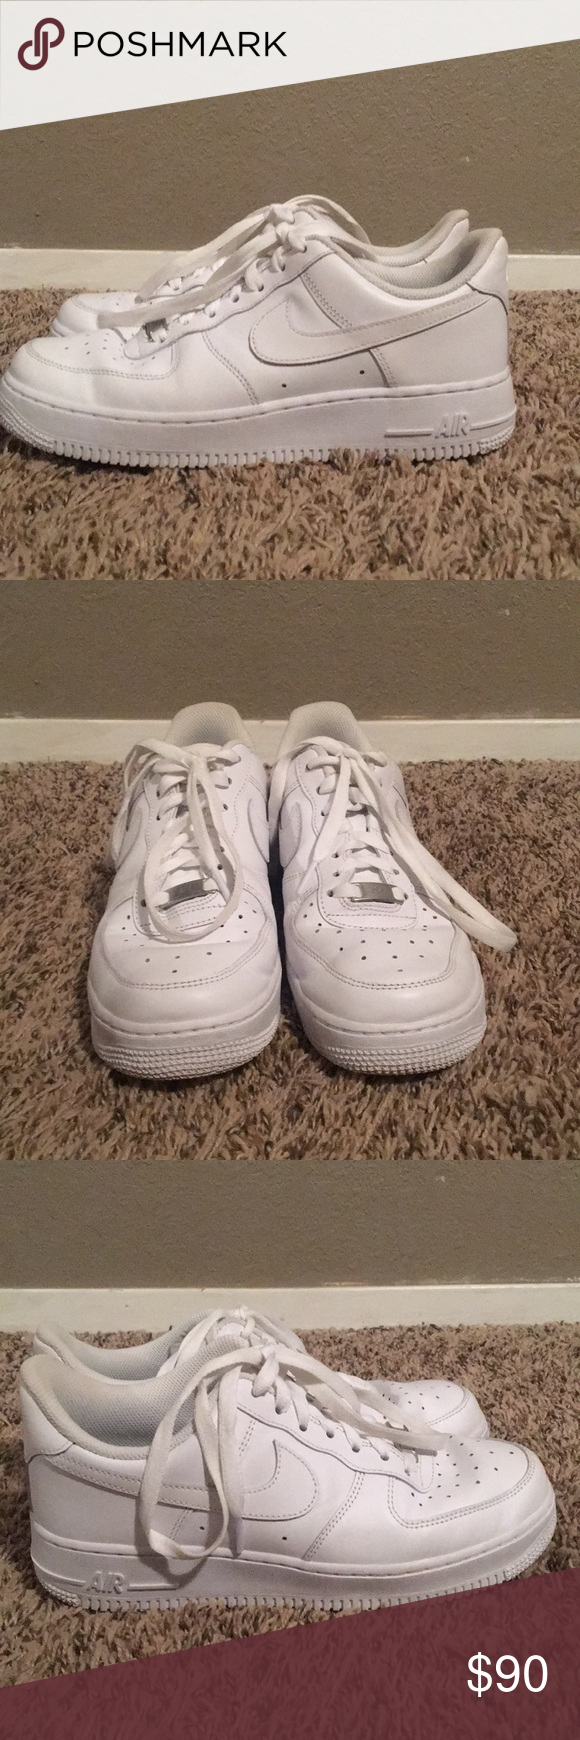 Women's size 8 Air Force 1's I just bought them from someone